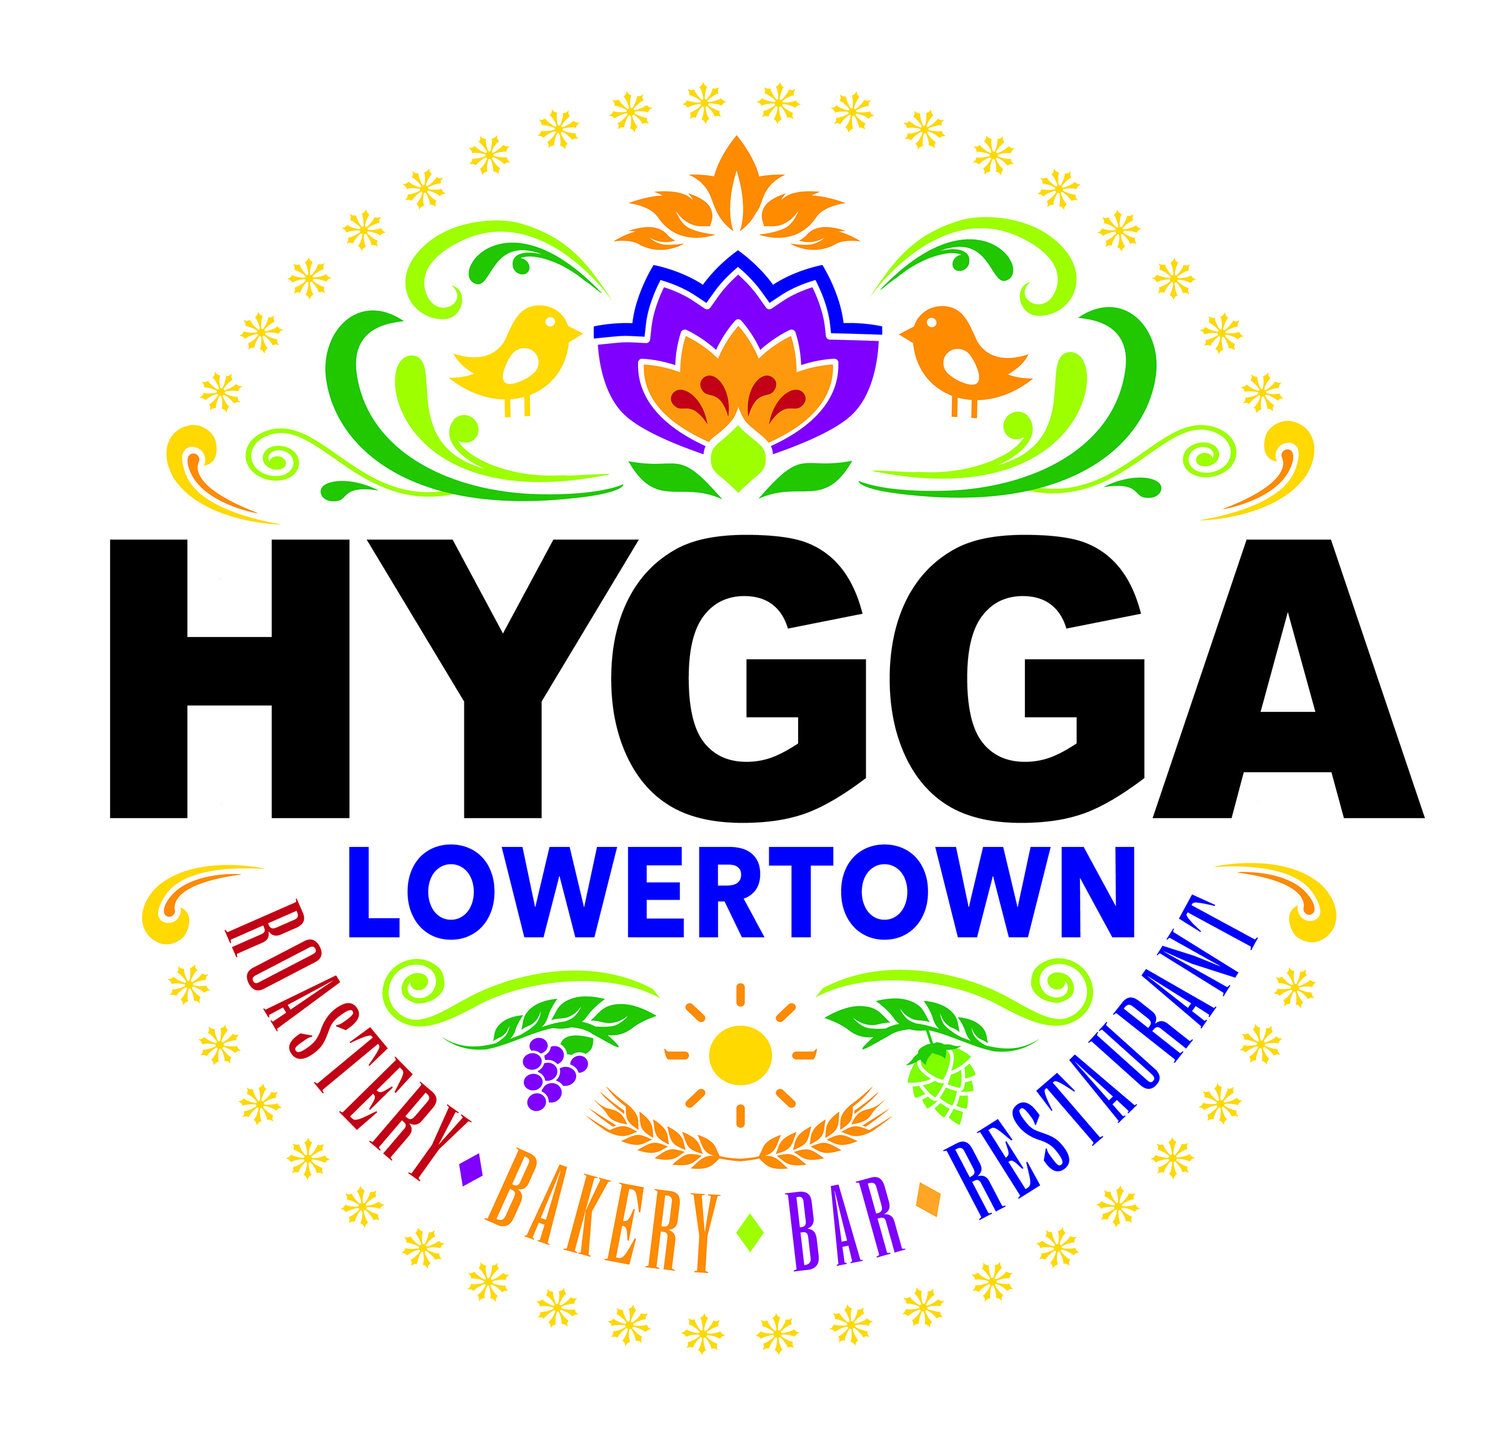 Hygga Lowertown